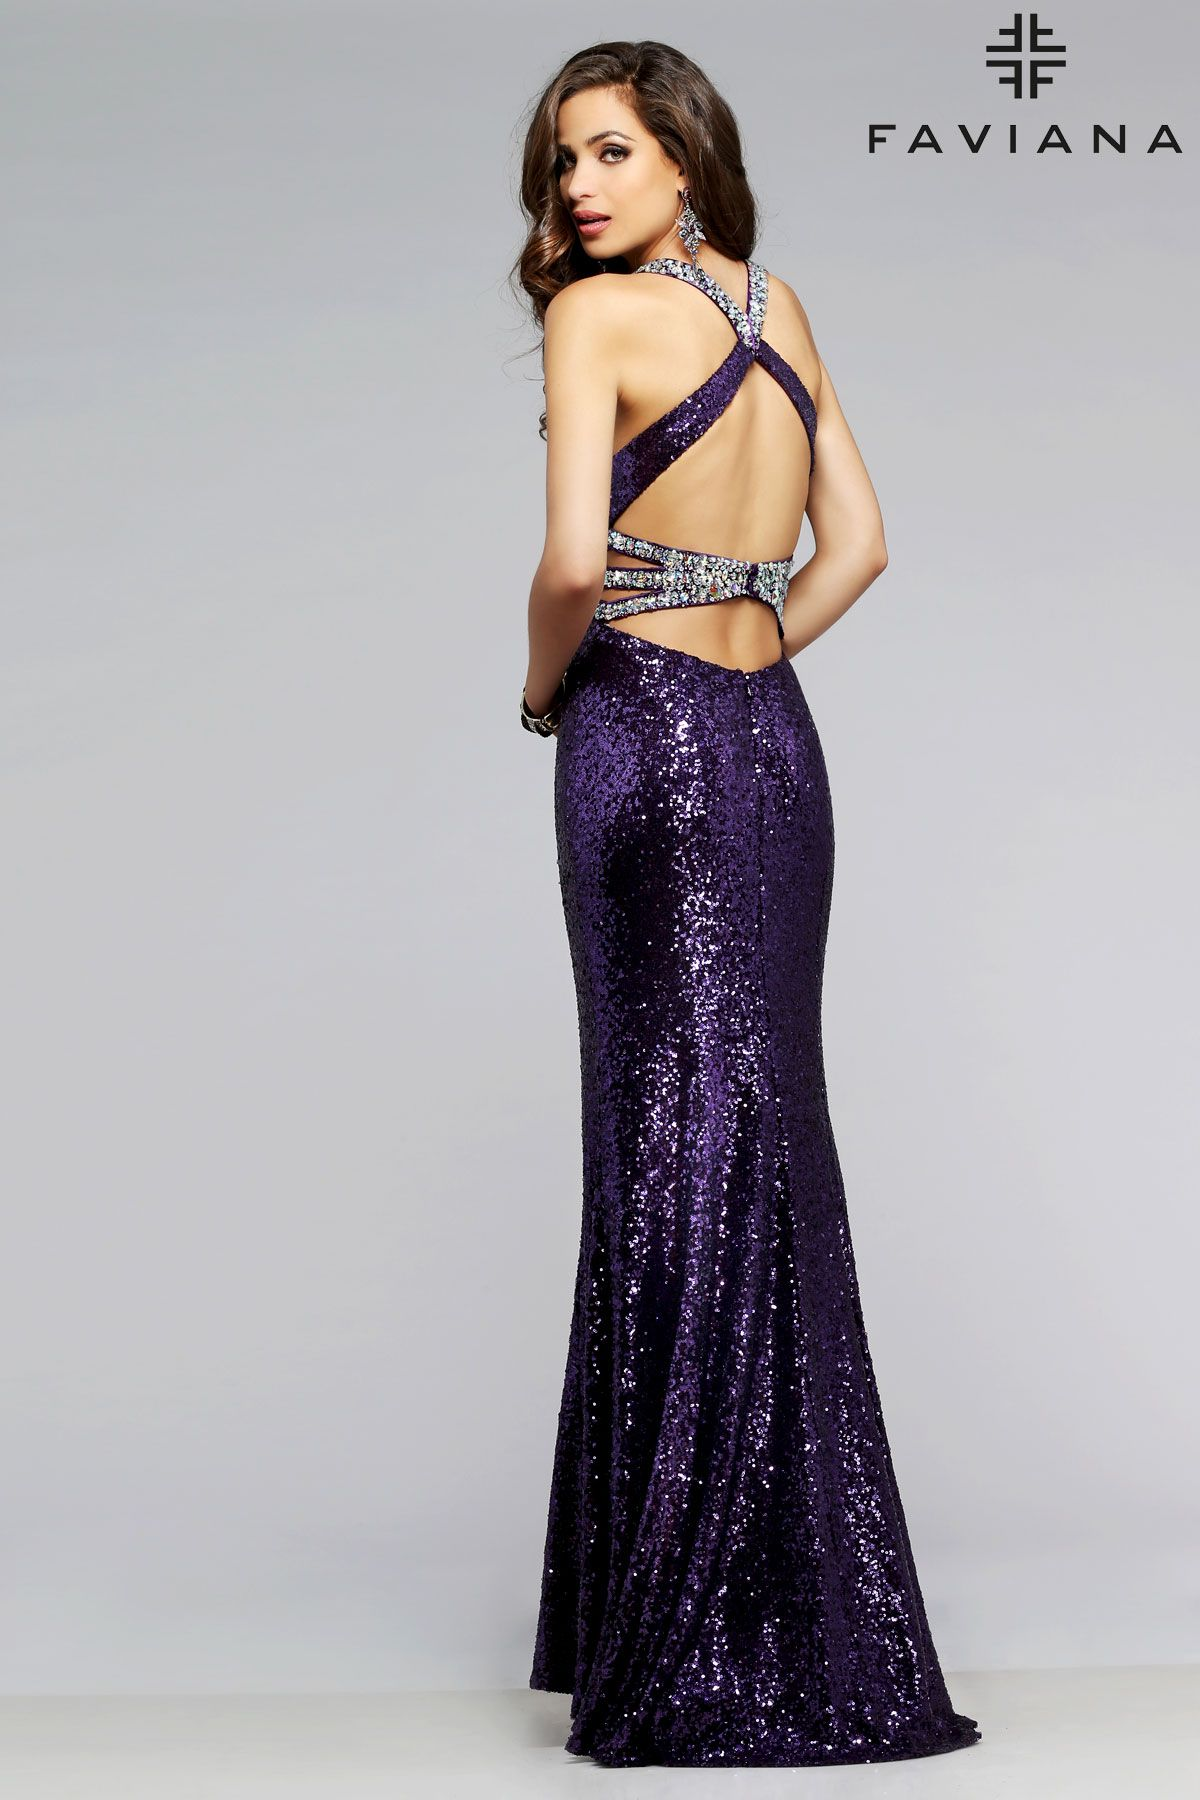 f5da525f Sequin Side Cut Out Dress details #Faviana Style 7507 | Sequin ...